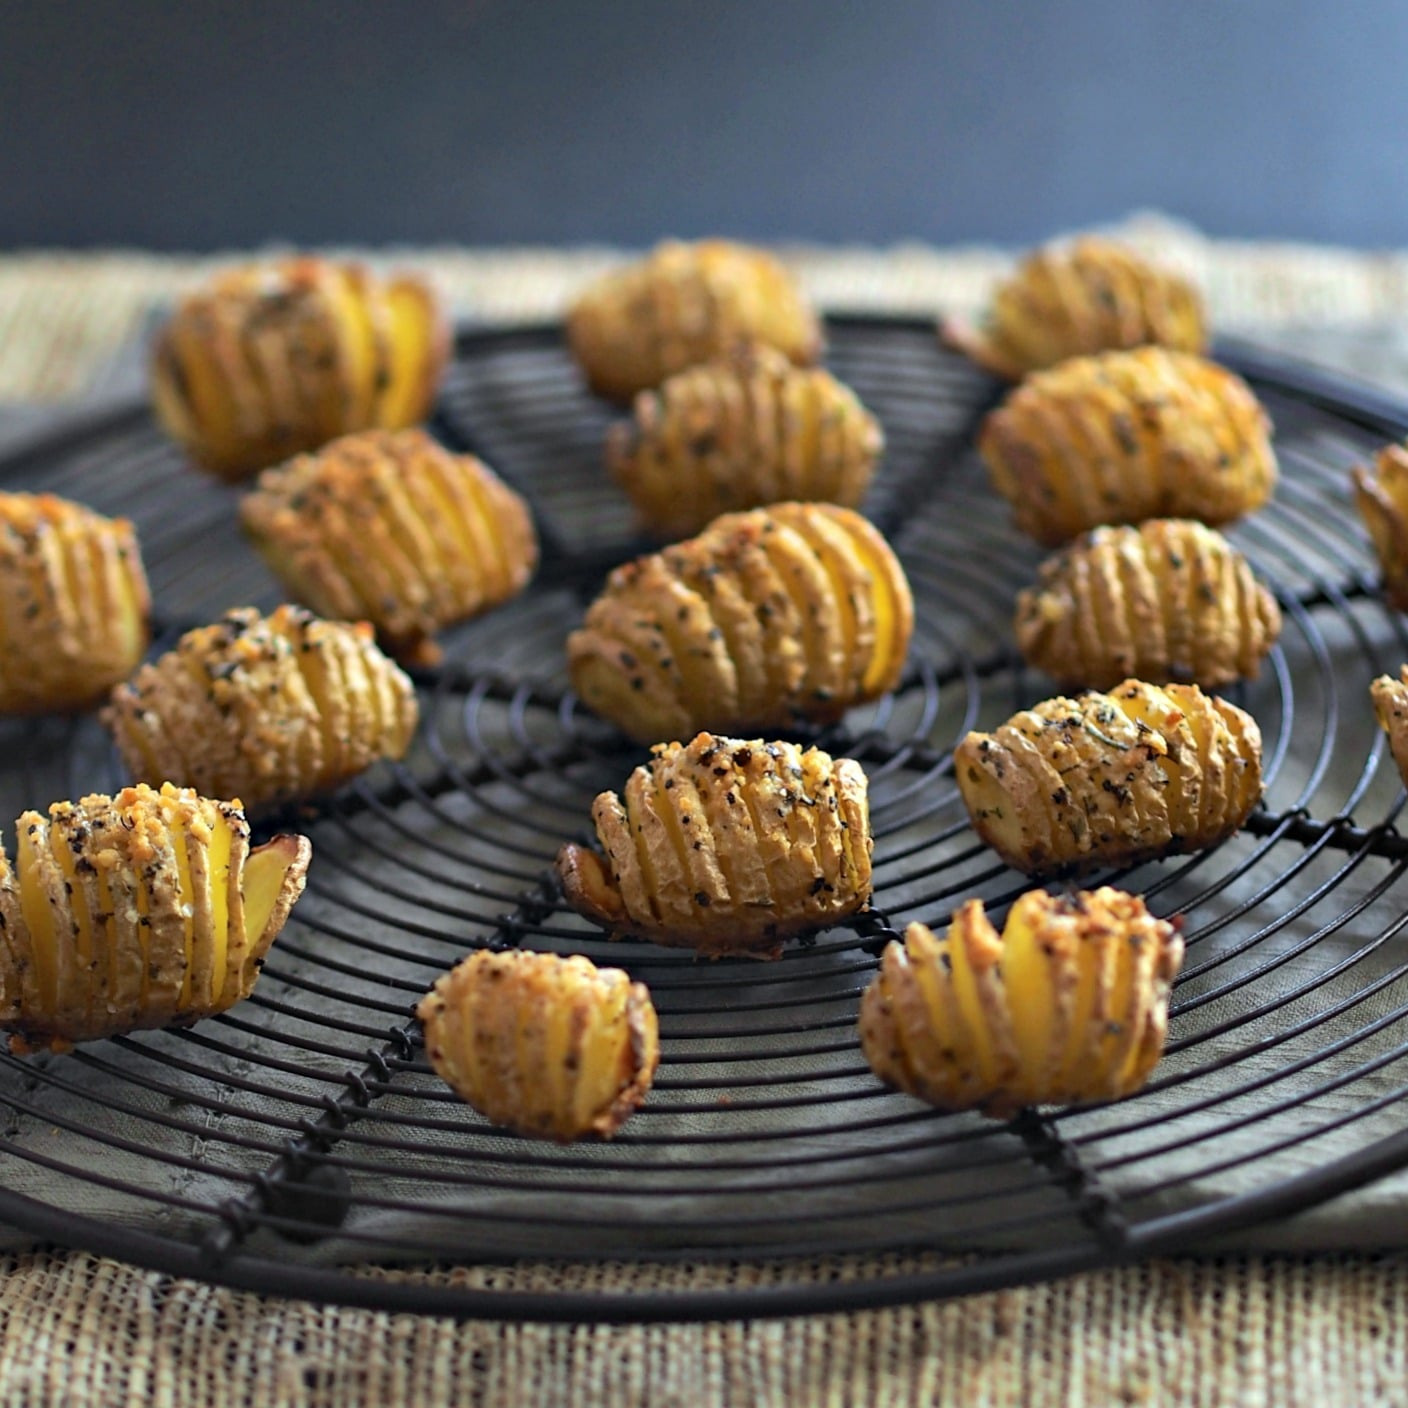 Baby Hasselback Potatoes - the perfect side for a family meal or formal dinner party. Accordion-sliced baby gold potatoes fan open while baking. Simply Sated